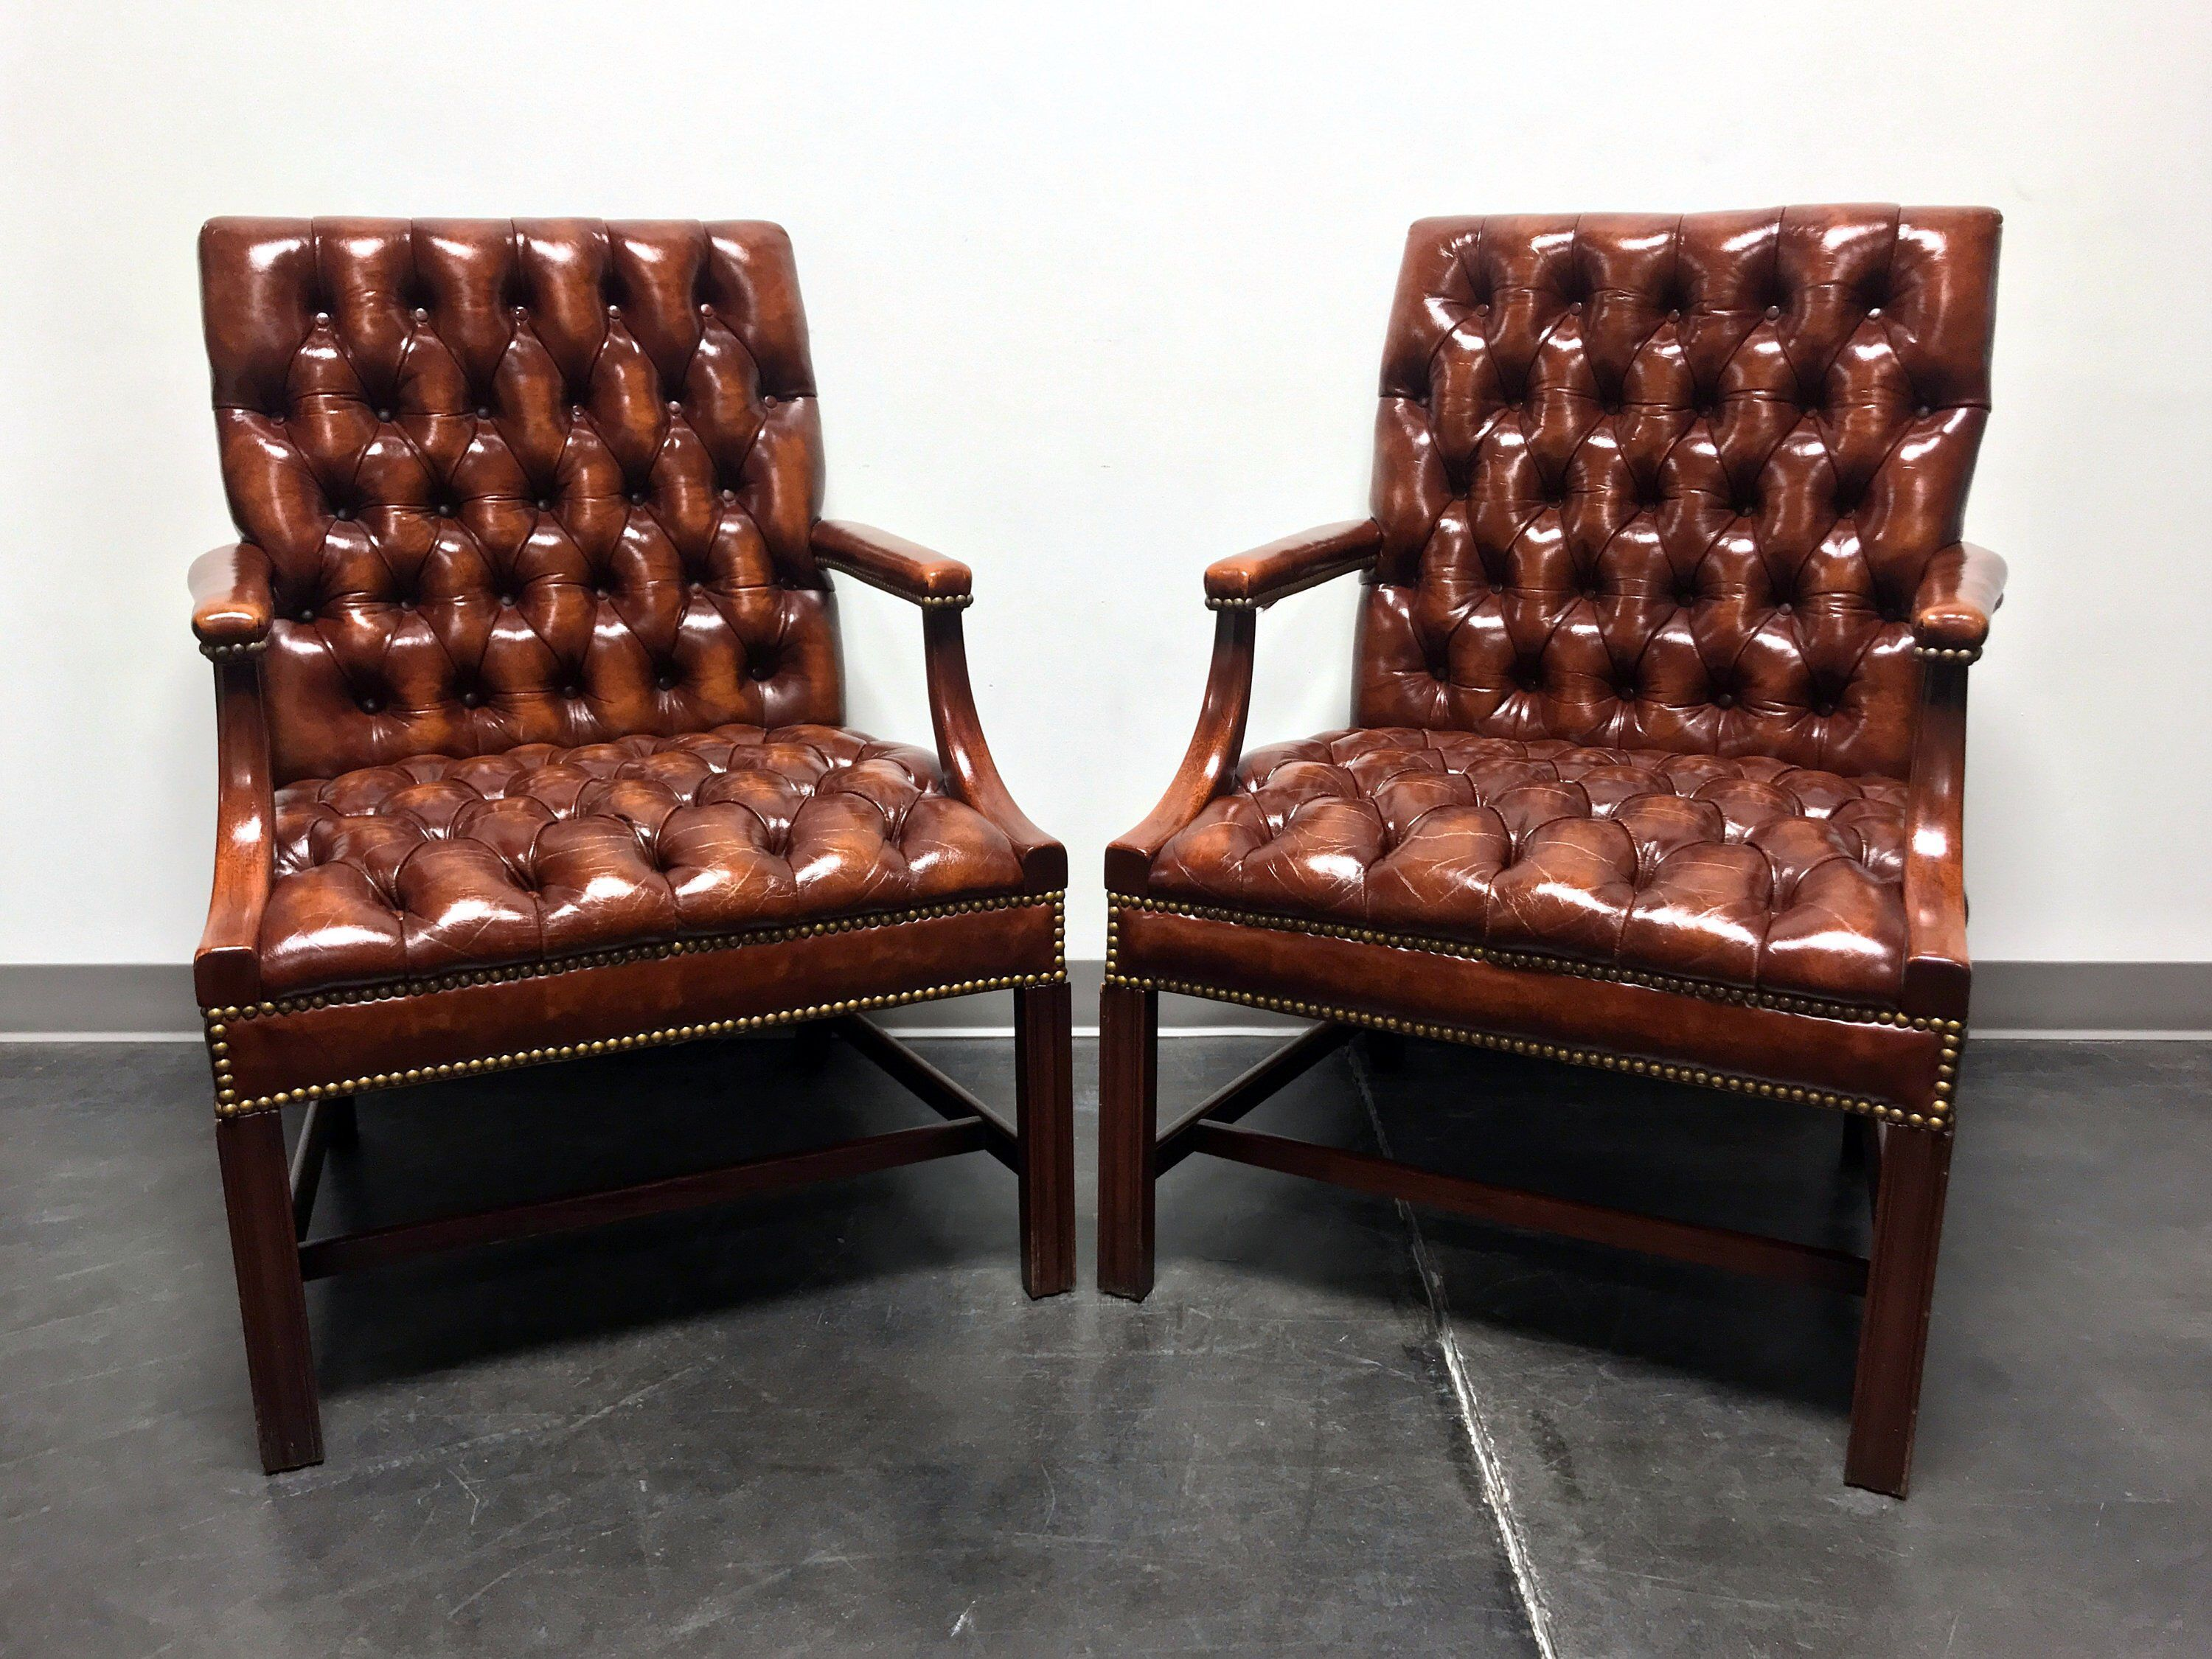 HICKORY CHAIR Leather Tufted Banker Open Arm Chairs with